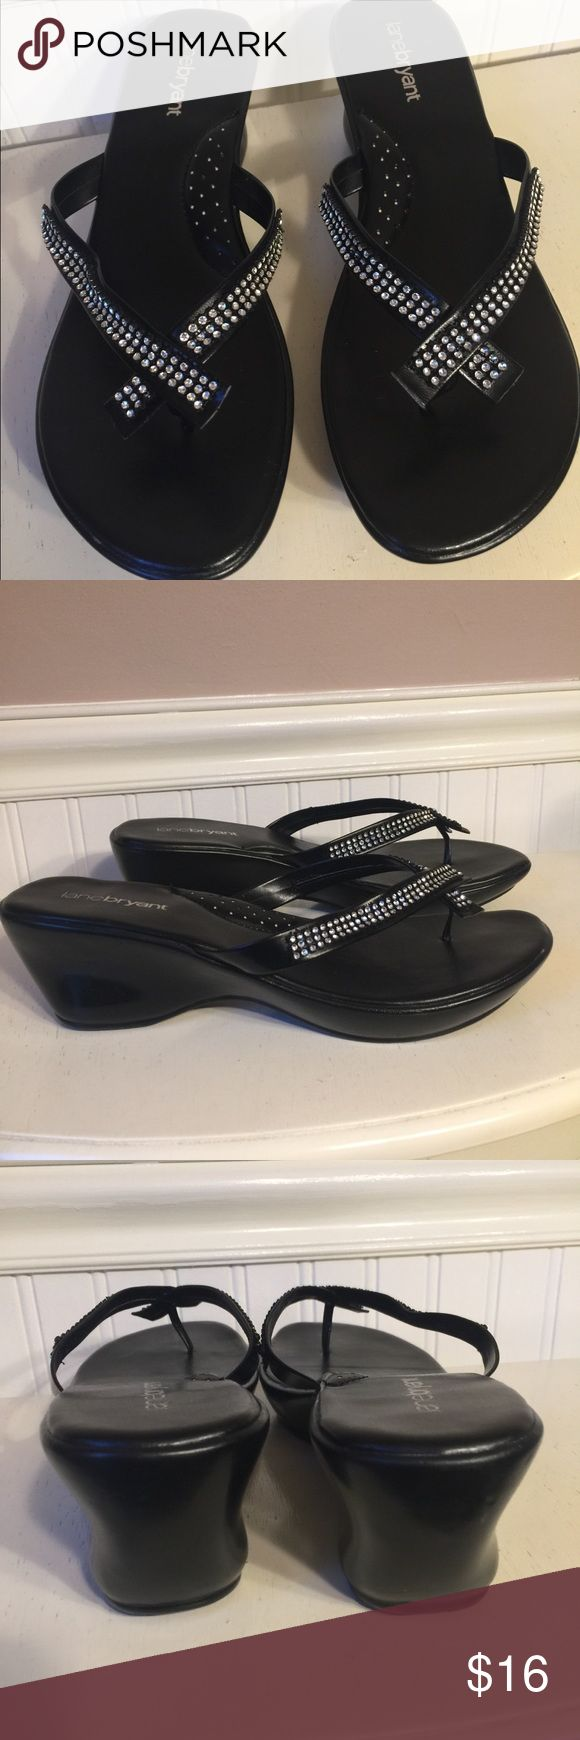 Lanebryant black sparkly flip flops Only worn once, in excellent condition, NO missing stones, great quality and super comfortable, new condition, mini heel, comes from a smoke/ pet free home ✅FAST SHIPPING✅ lanebryant Shoes Sandals